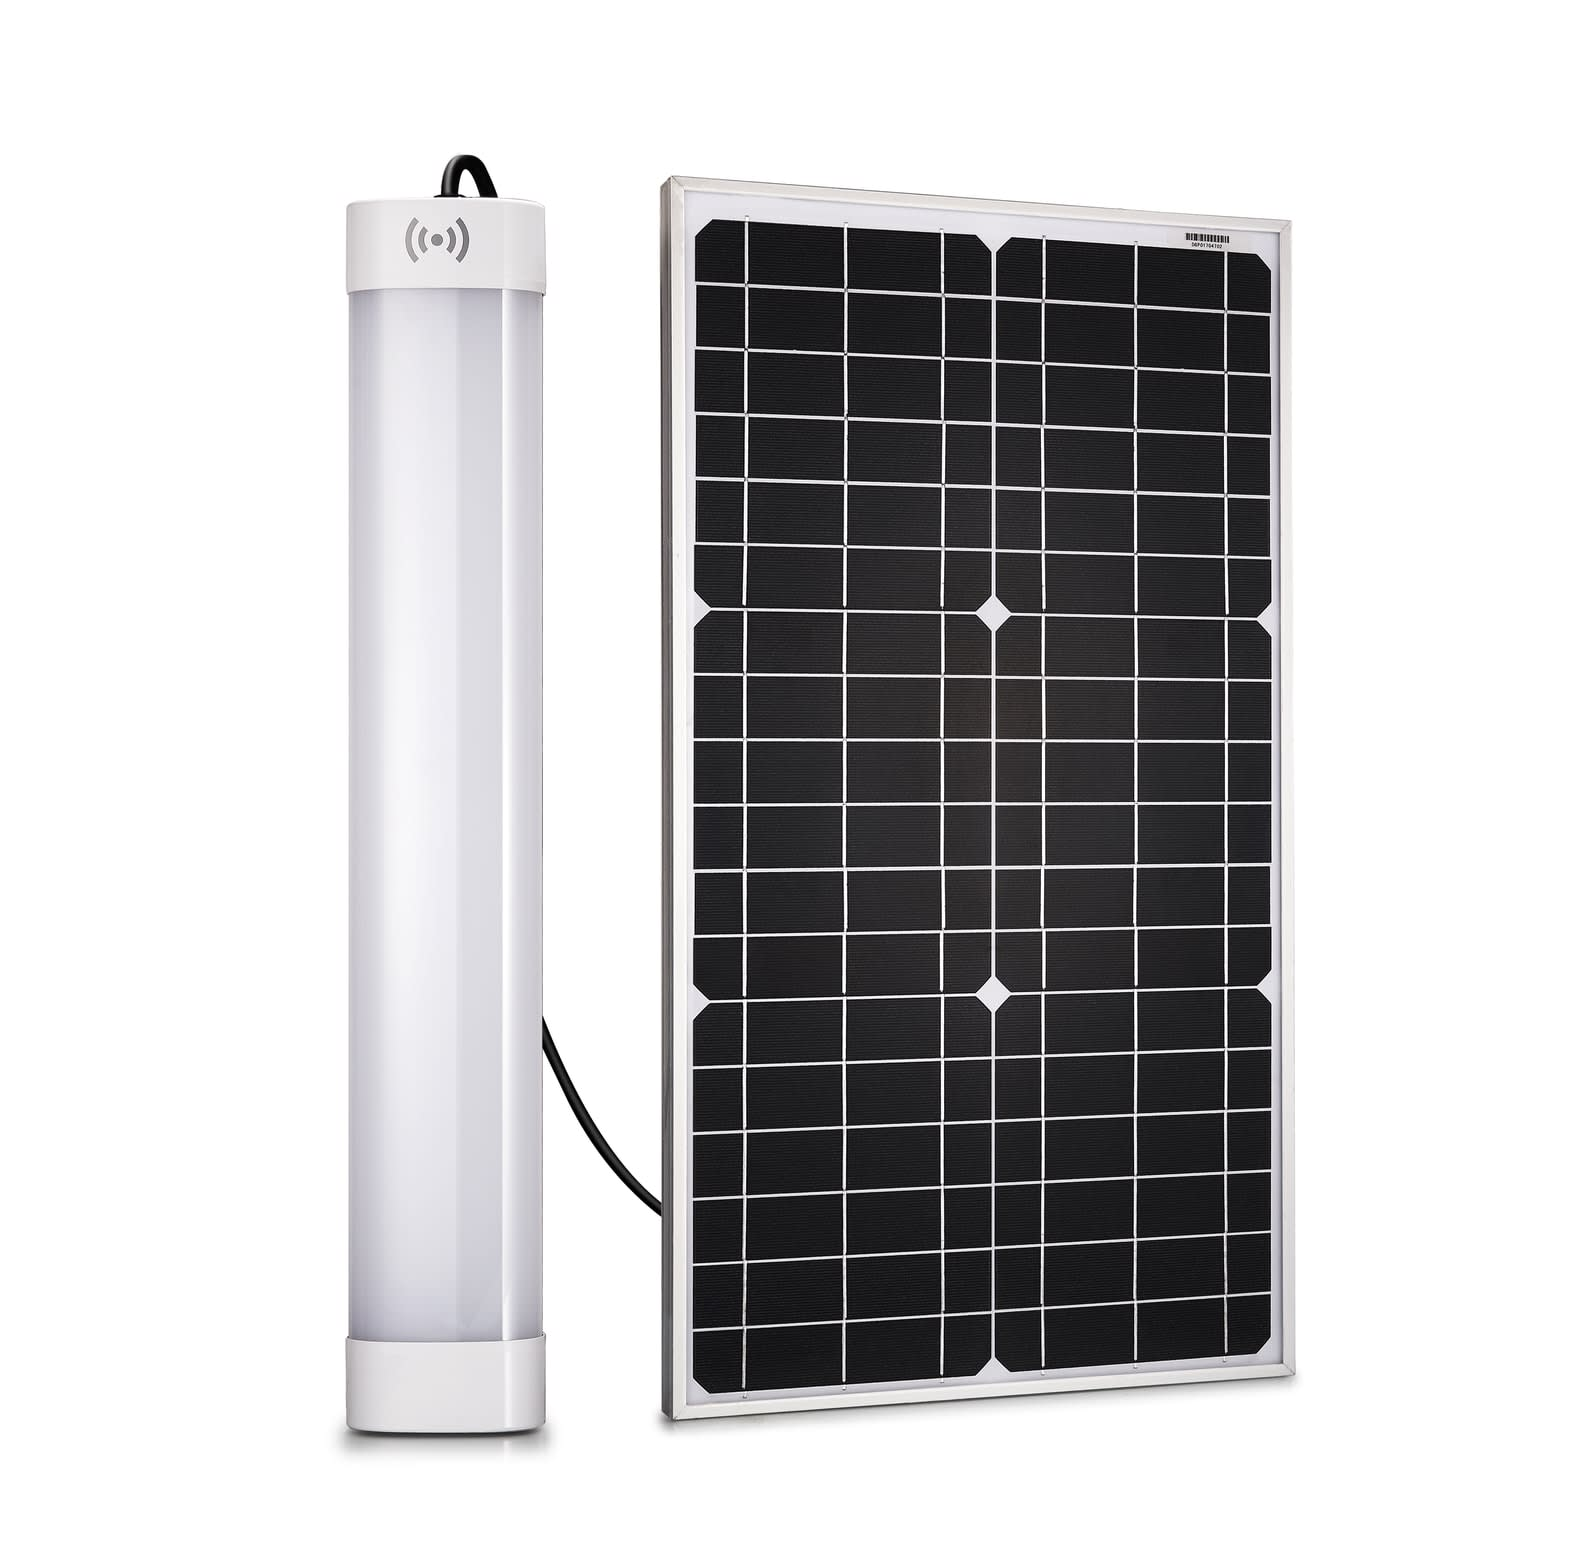 SolarPower Stinger Solar Tube